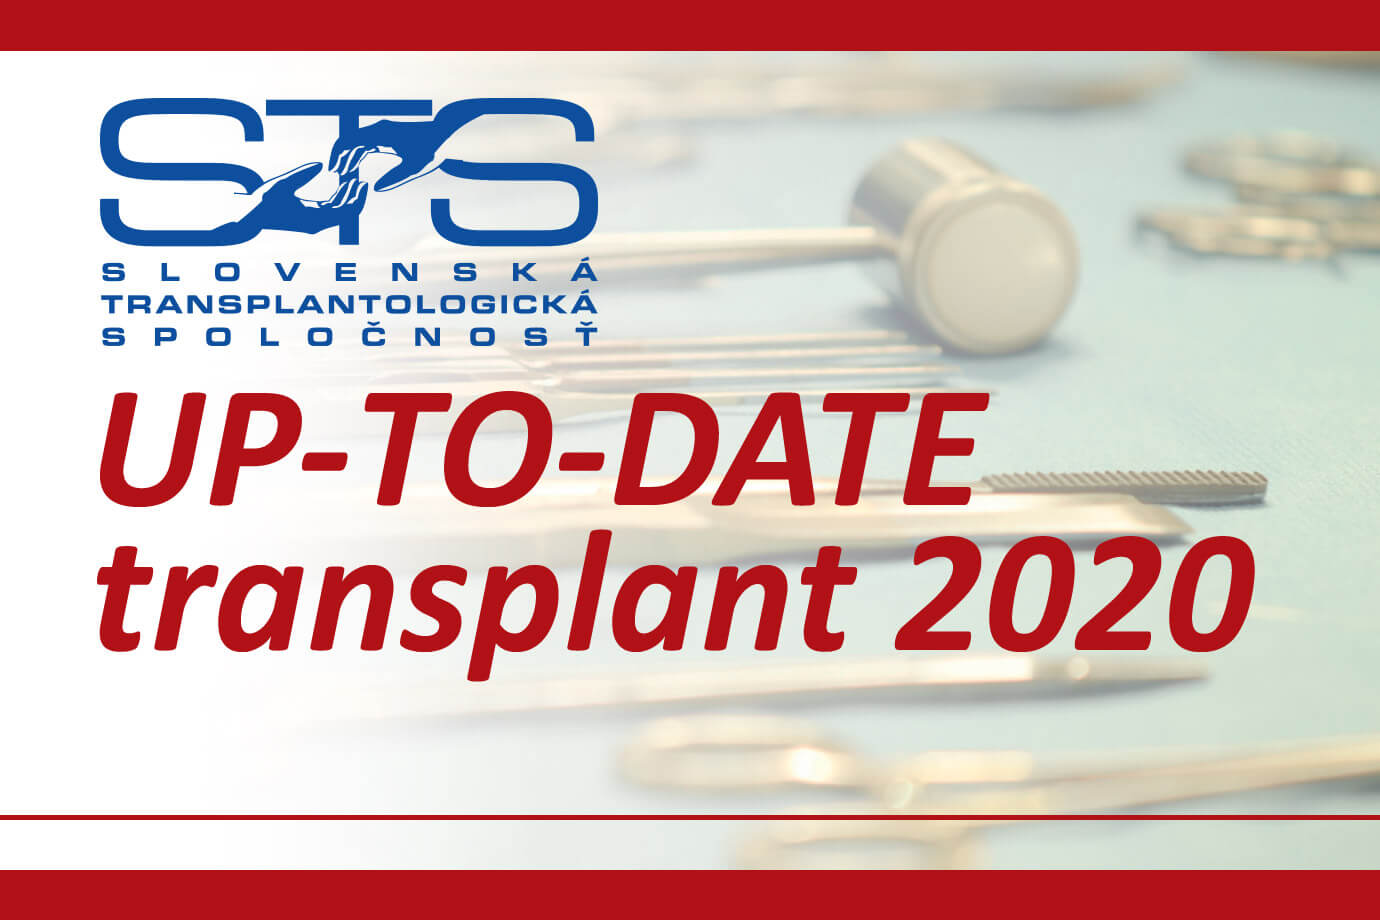 UP-TO-DATE transplant 2020